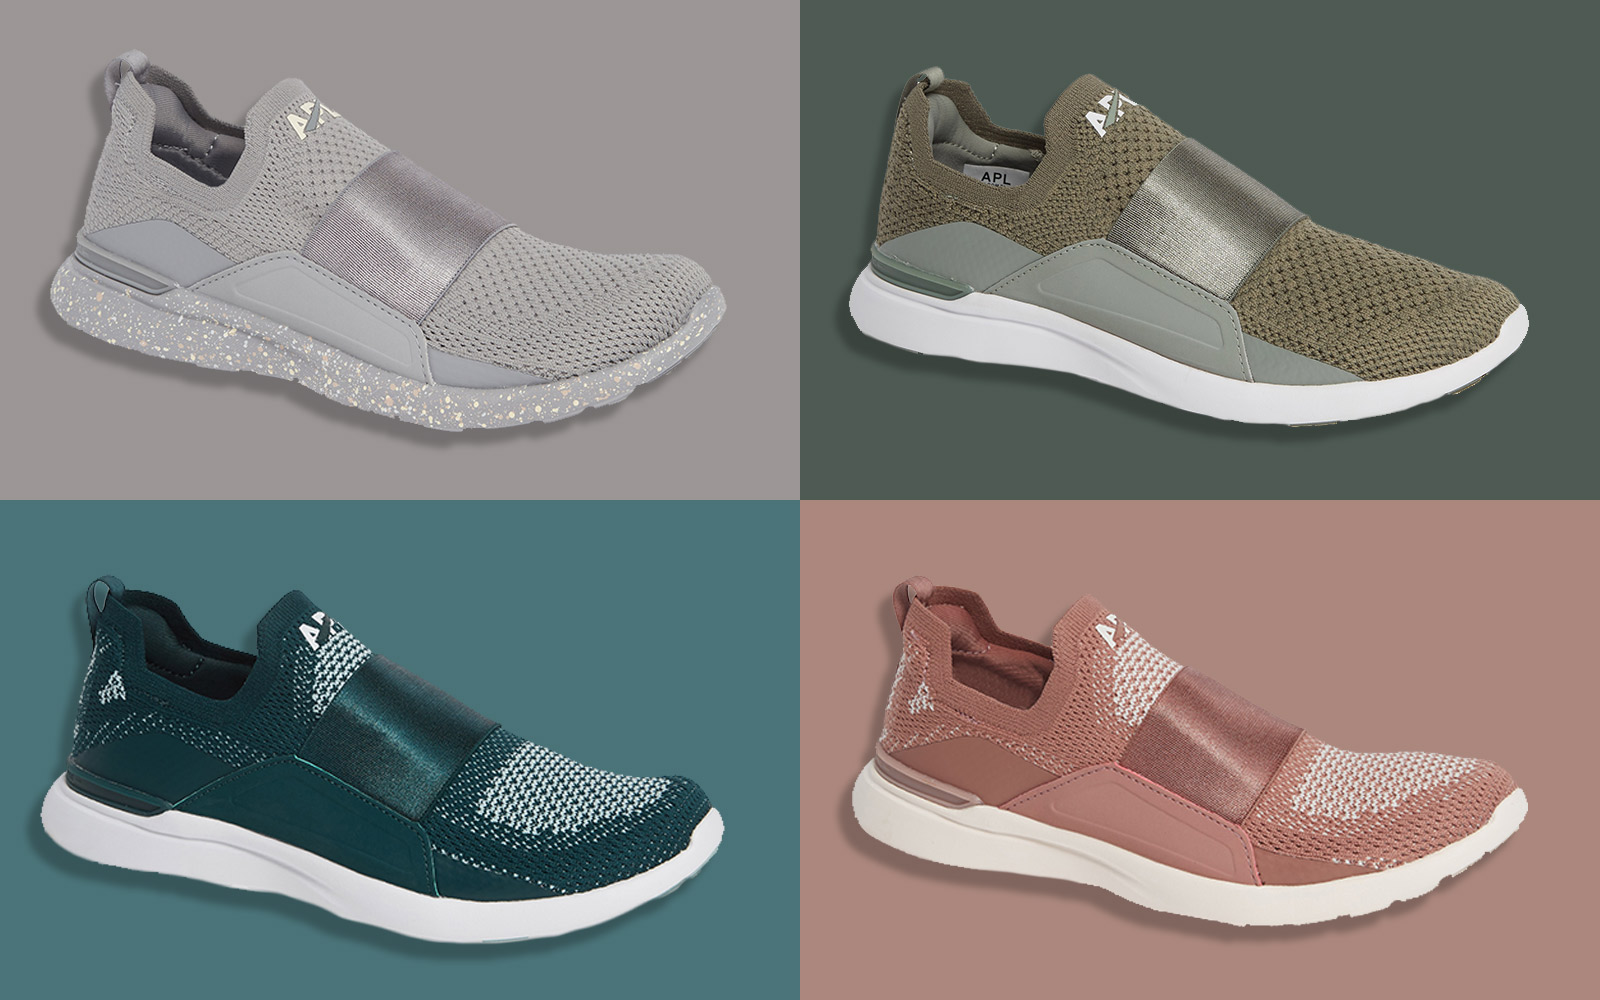 Oprah's Favorite Sneaker Is the Comfiest Travel Shoe